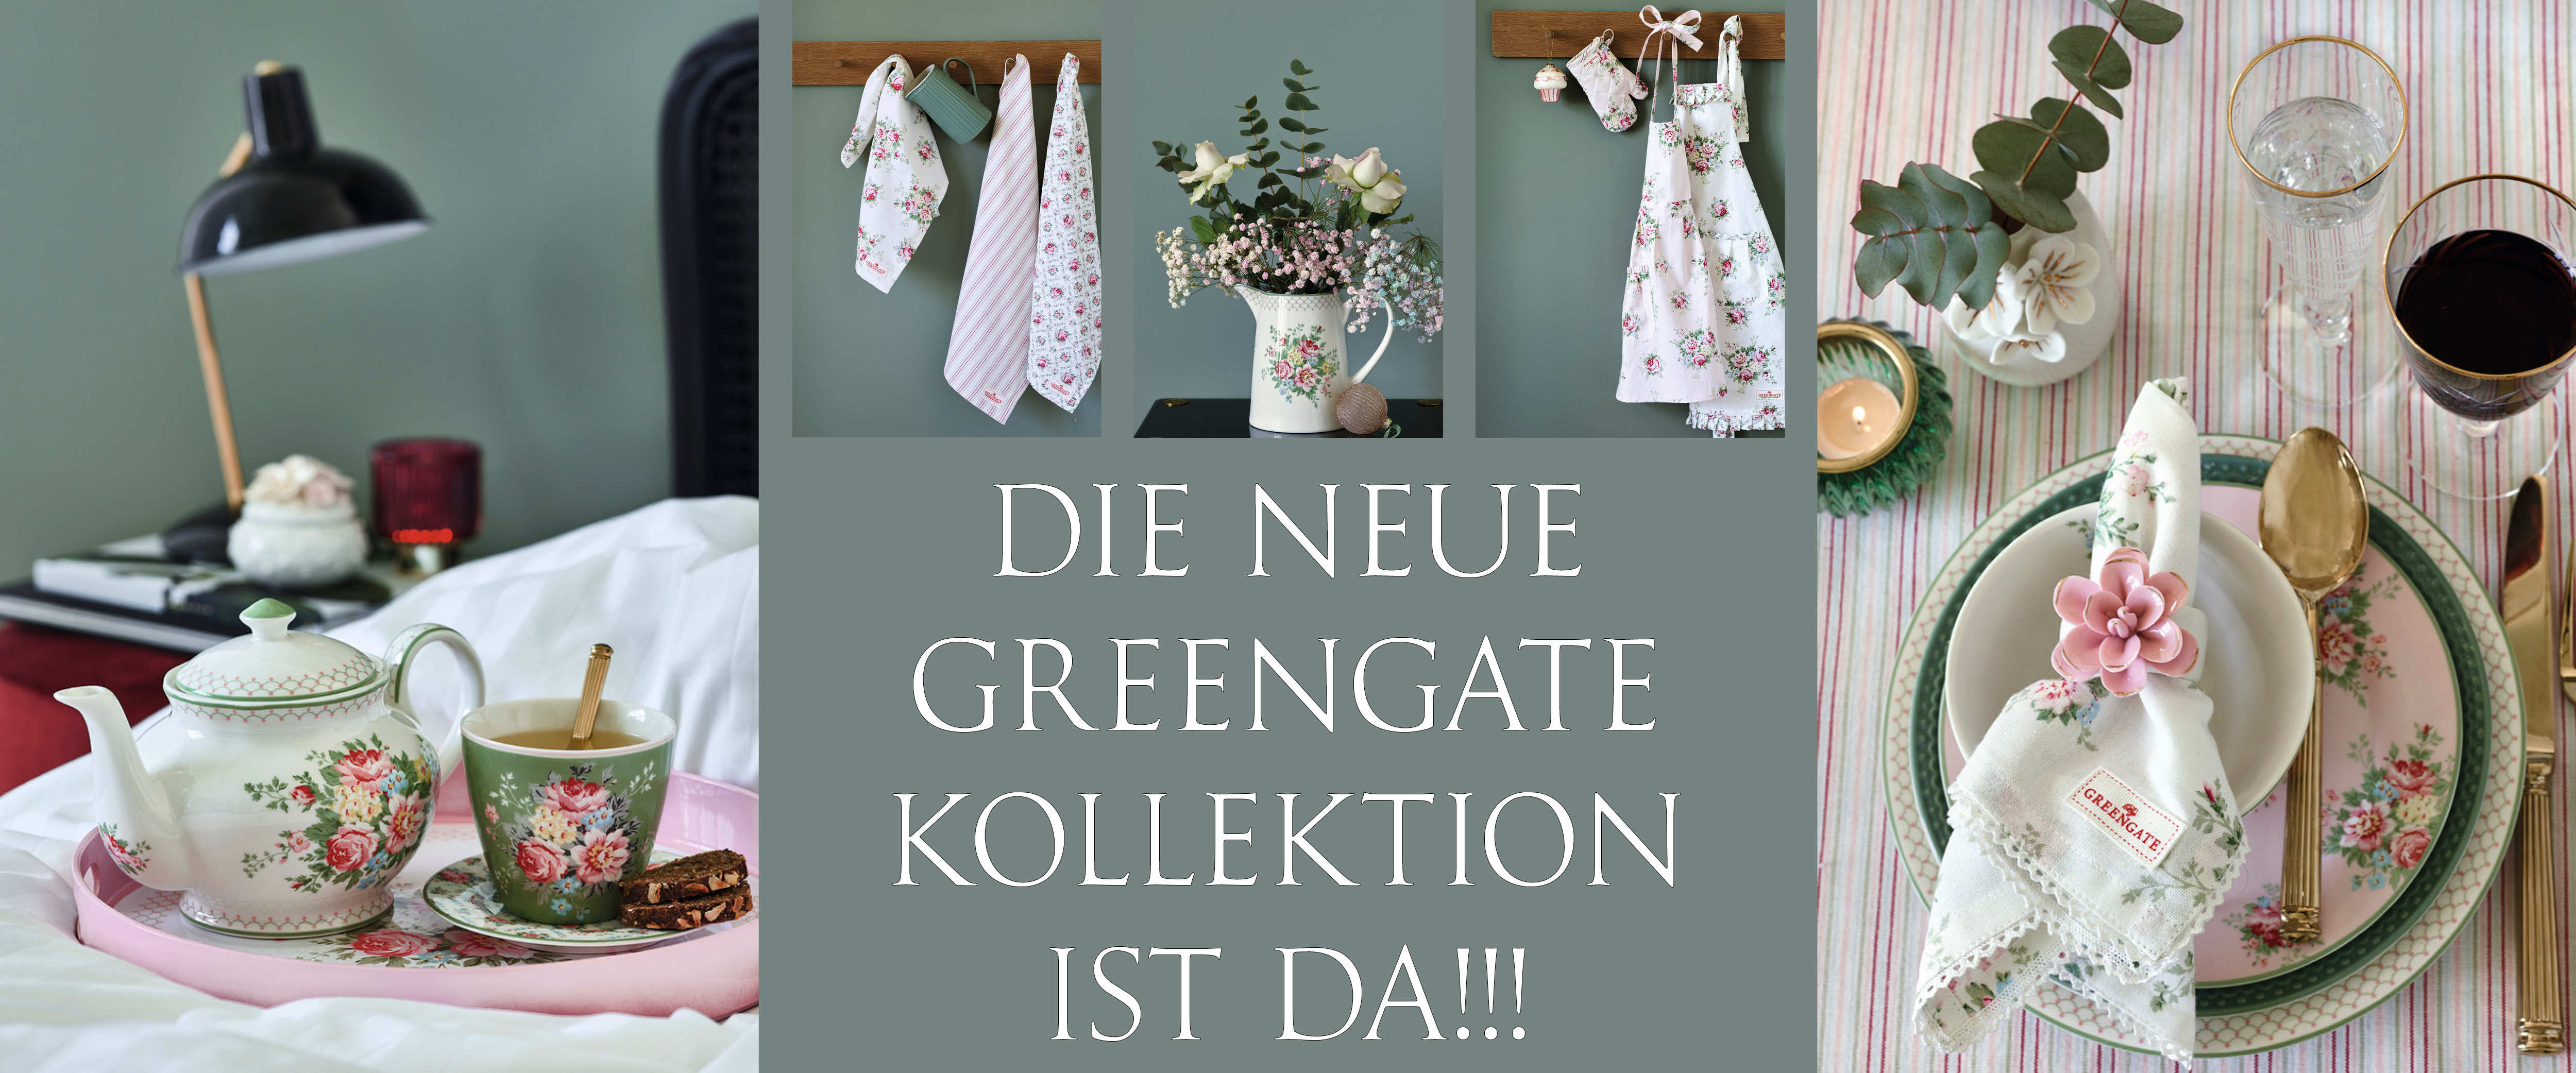 Greengate Kollektion